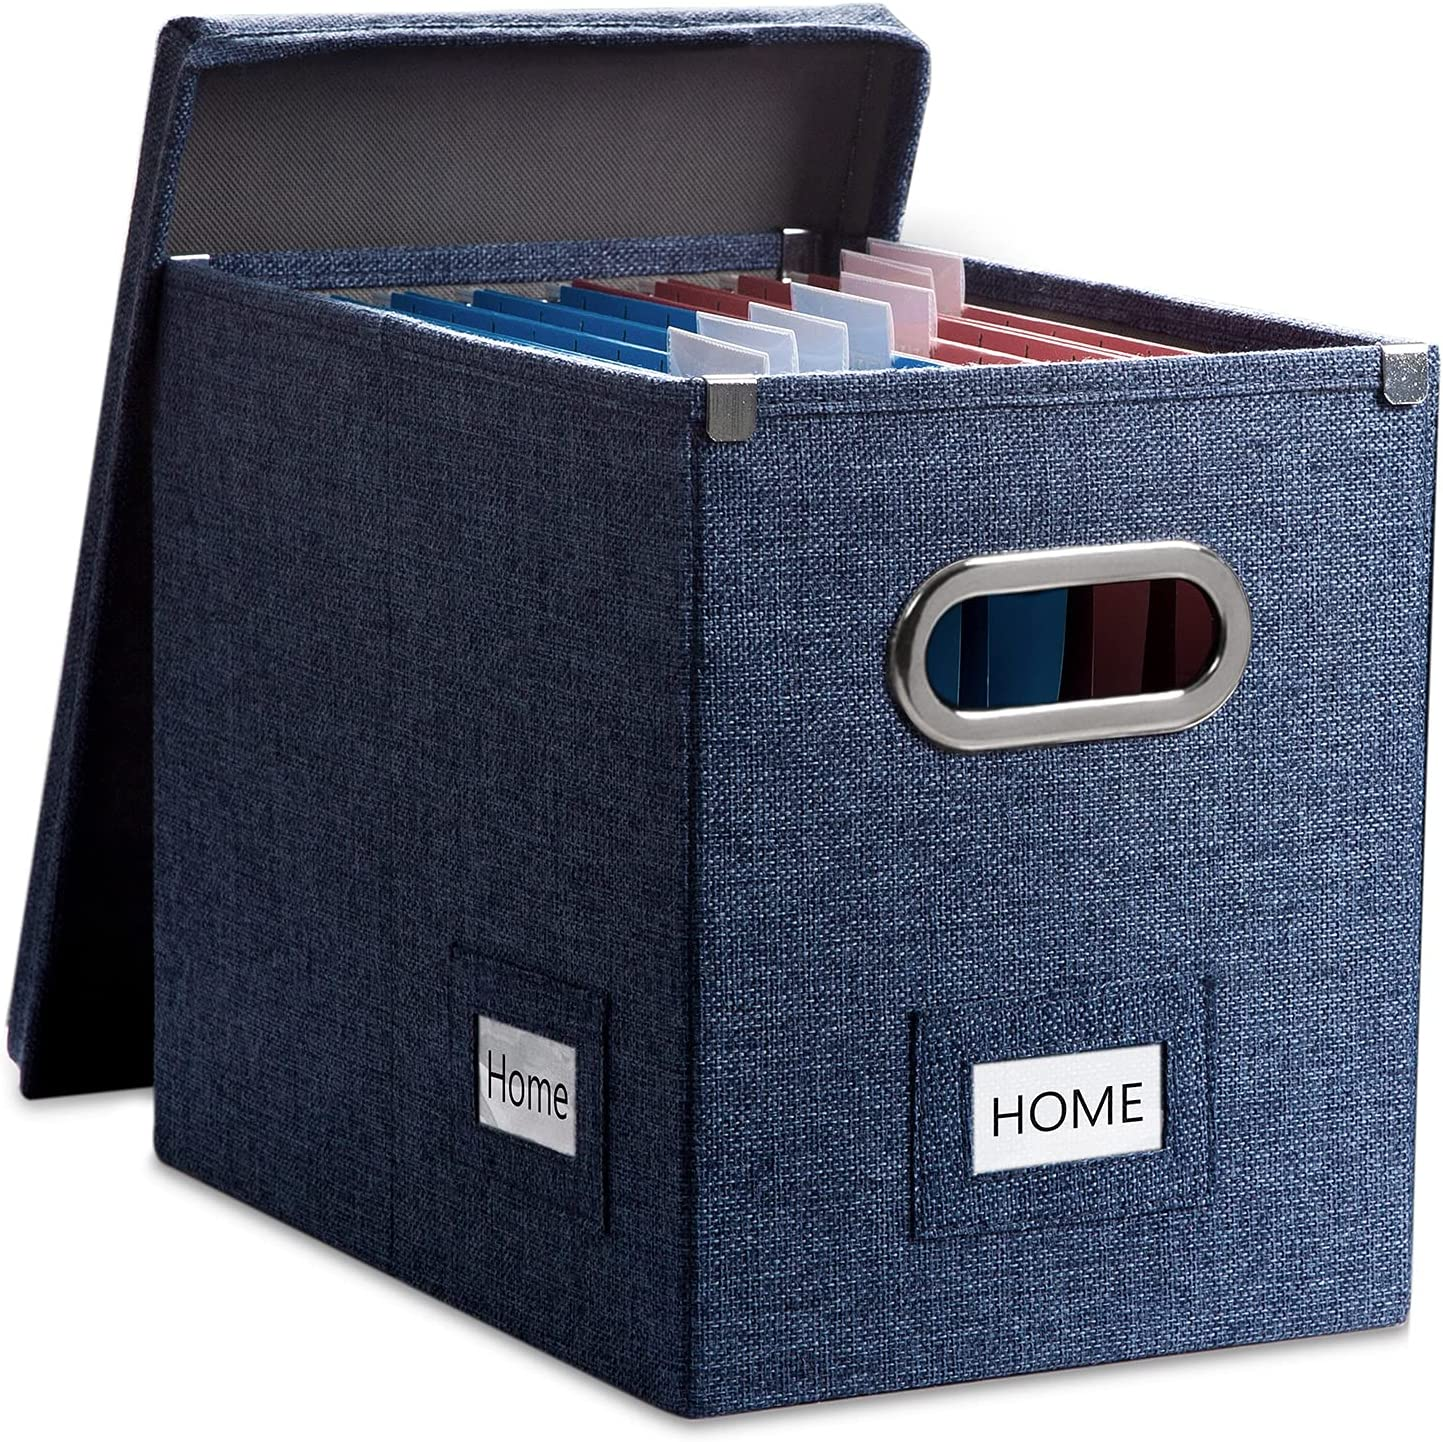 PRANDOM File Organizer Box Max 51% OFF - Set 1 Decorative At the price of surprise of Collapsible Lin